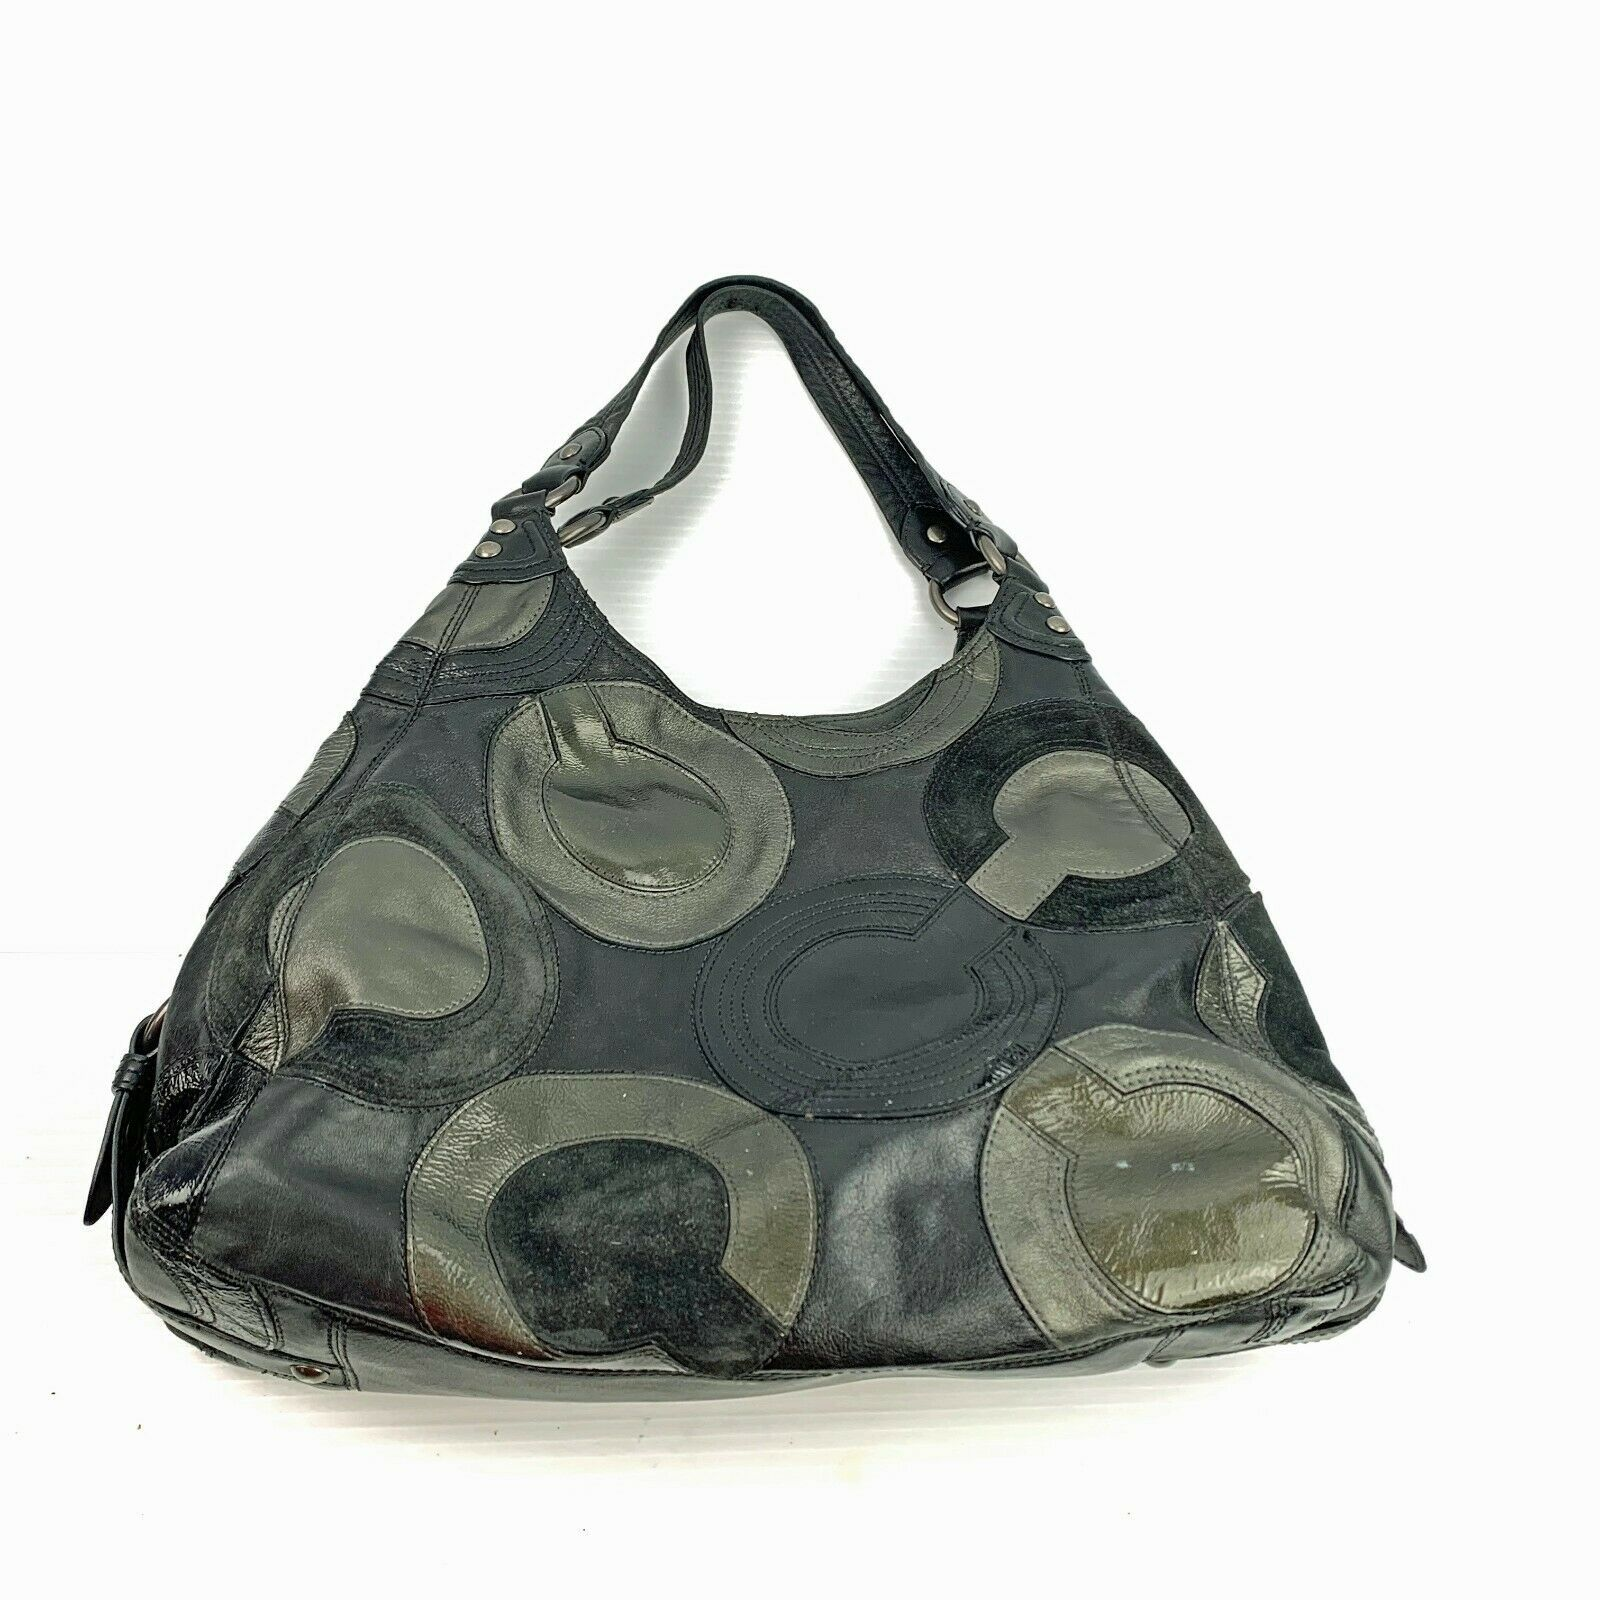 Authentic COACH Inlaid Op Art Maggie Leather Hobo Shoulder Bag F0969-14298